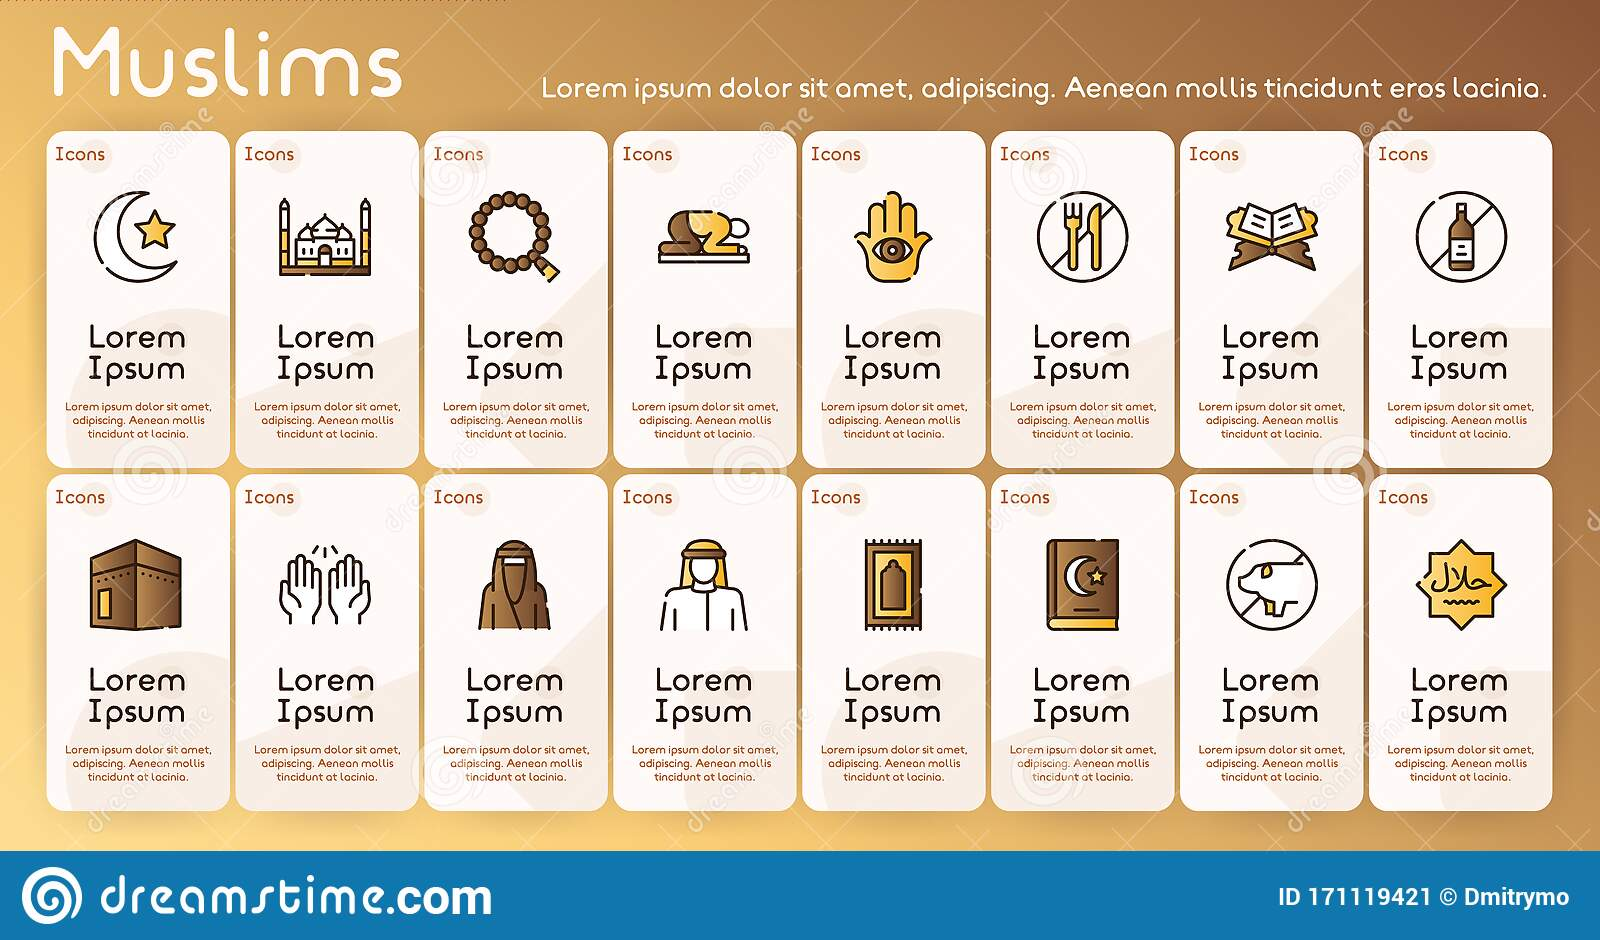 Muslim Color Linear Vector Icons Set Stock Vector Illustration Of Carpet Icon 171119421